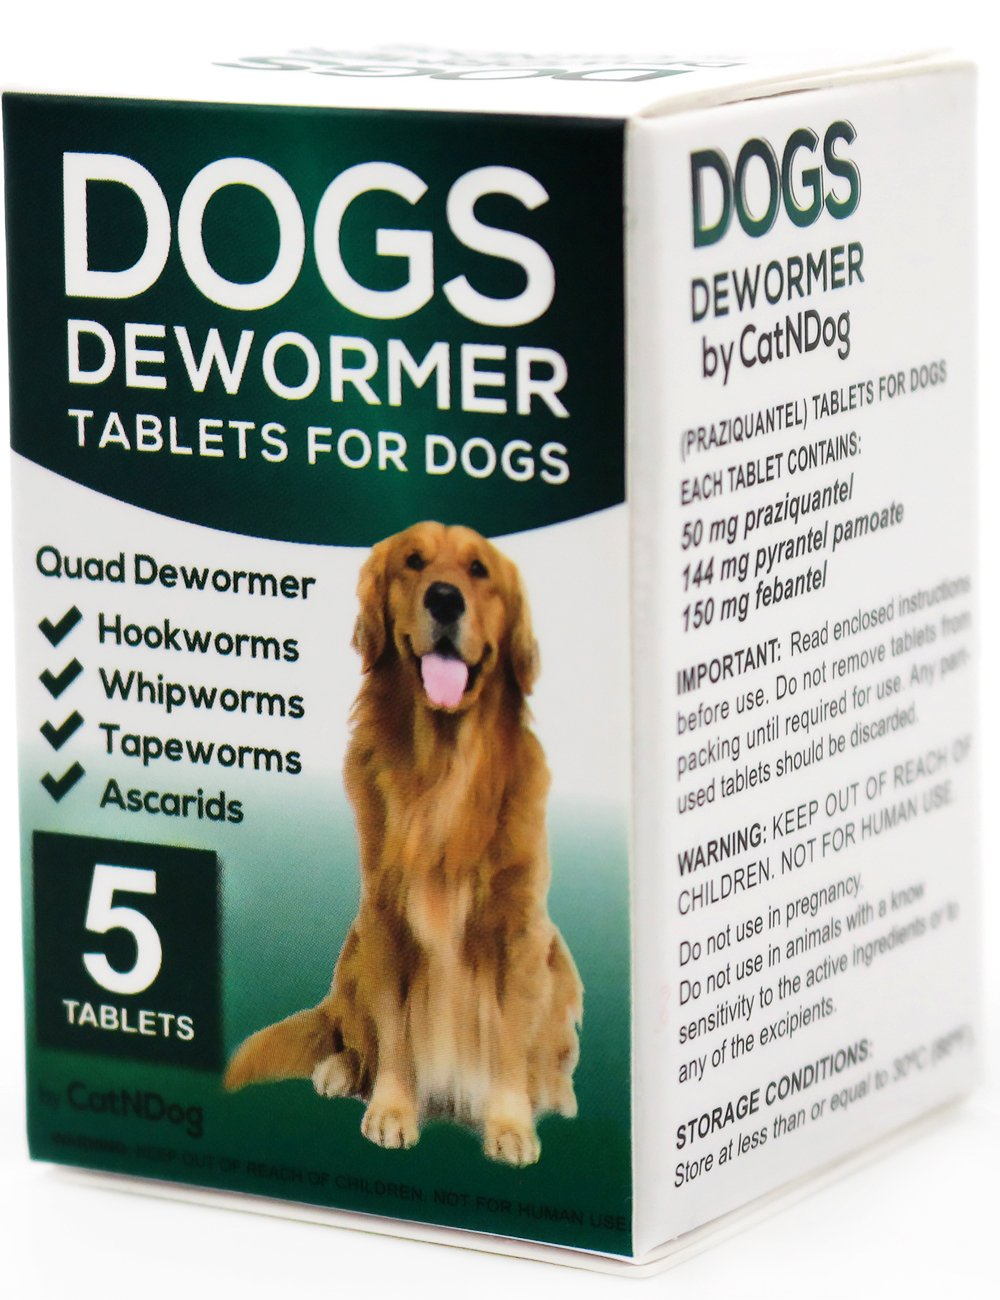 CatNDog Quad Dewormer for dogs, Medicine Pills Wormer for Large and Puppy 5 Tablets